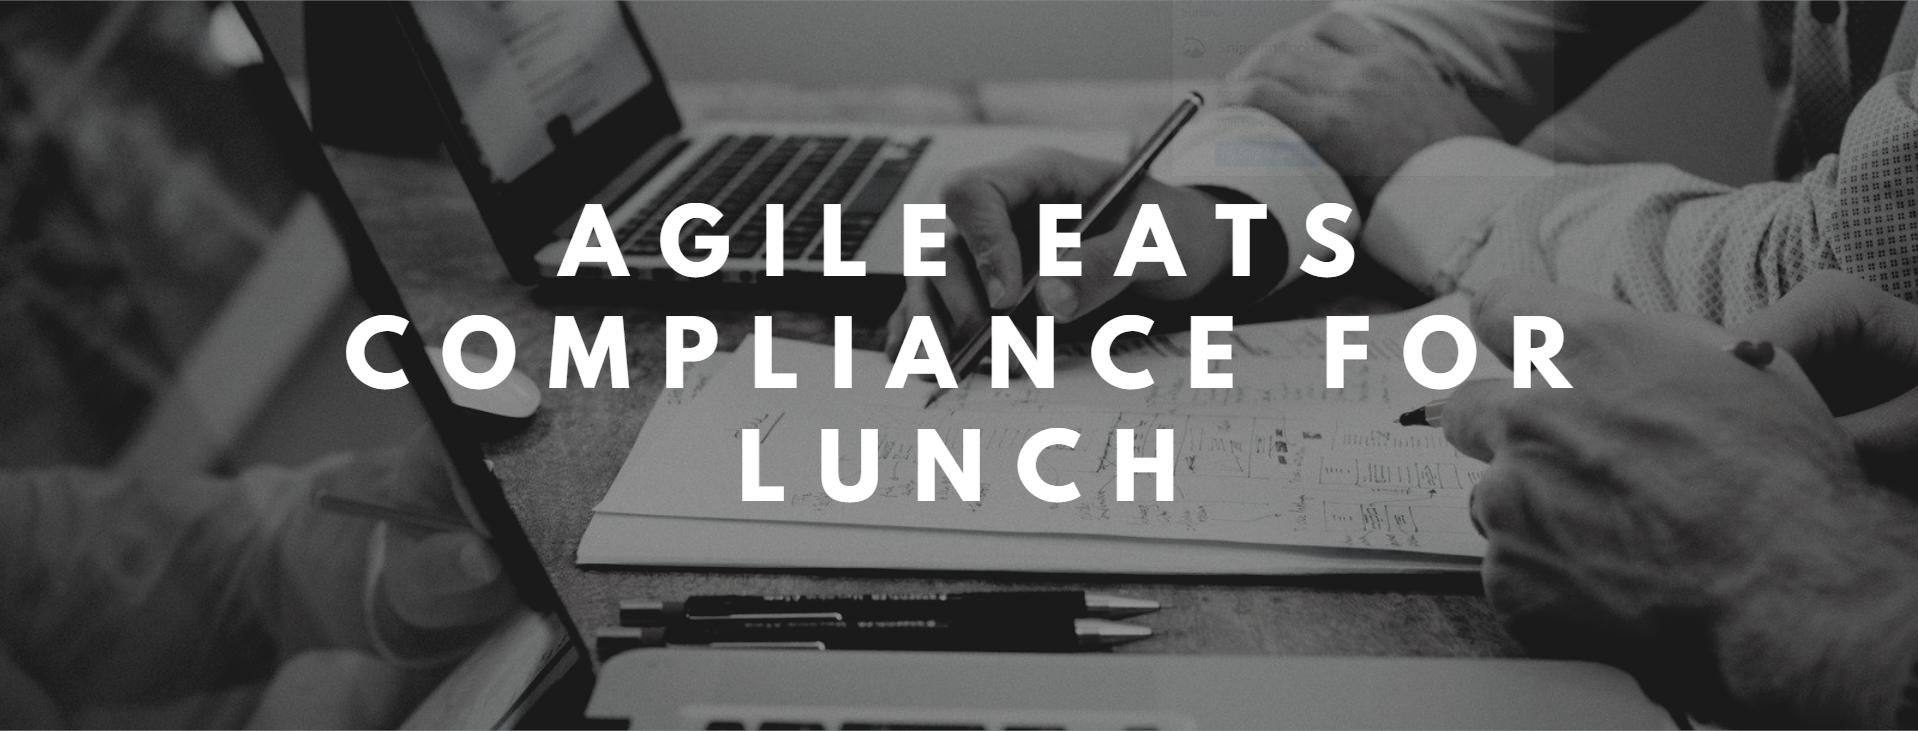 Agile Eats Compliance for Lunch